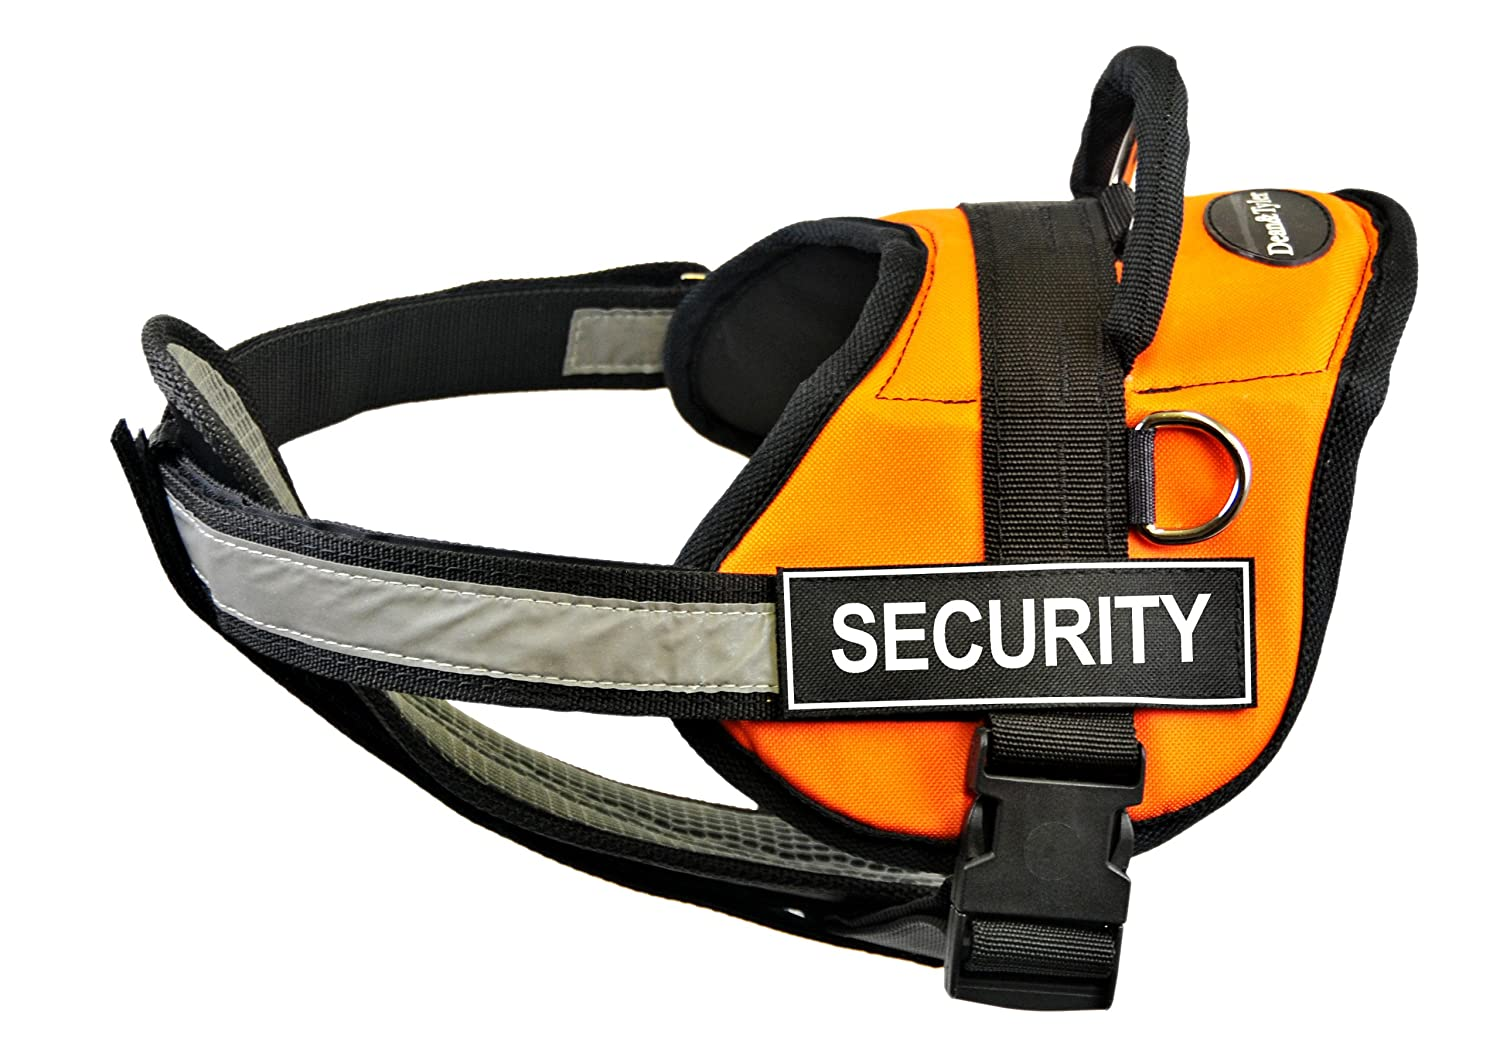 Dean & Tyler 25-Inch to 34-Inch Security Dog Harness with Padded Reflective and Removable Chest Straps, Small, orange Black